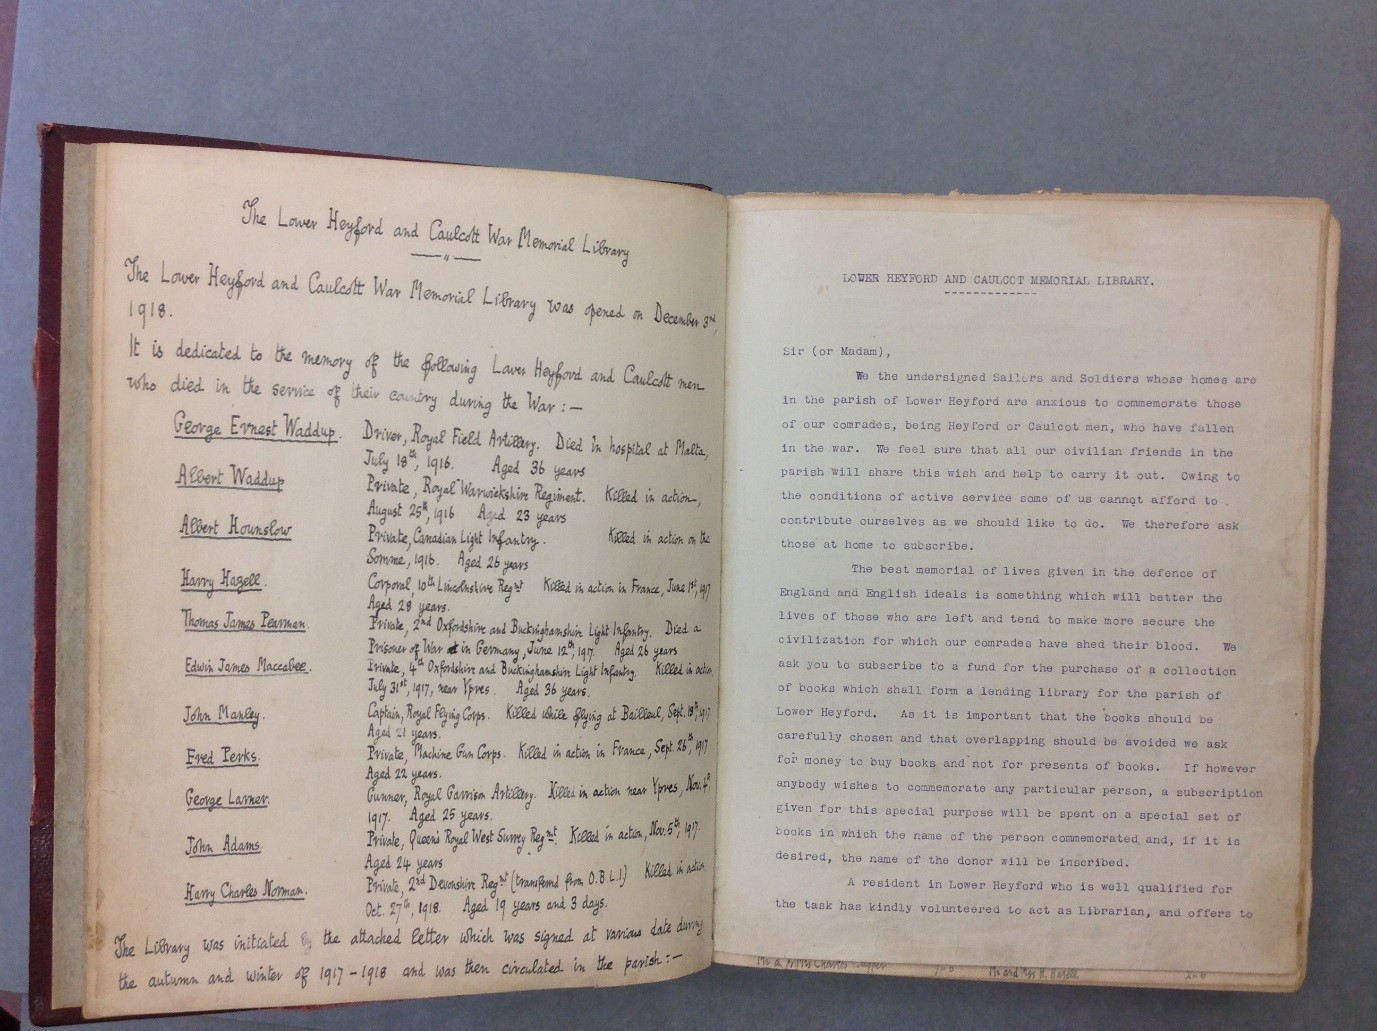 Bodleian Vet. A7 d.799: subscription to raise money for a war memorial library, within a copy of J.C. Blomfield's History of Lower and Upper Heyford